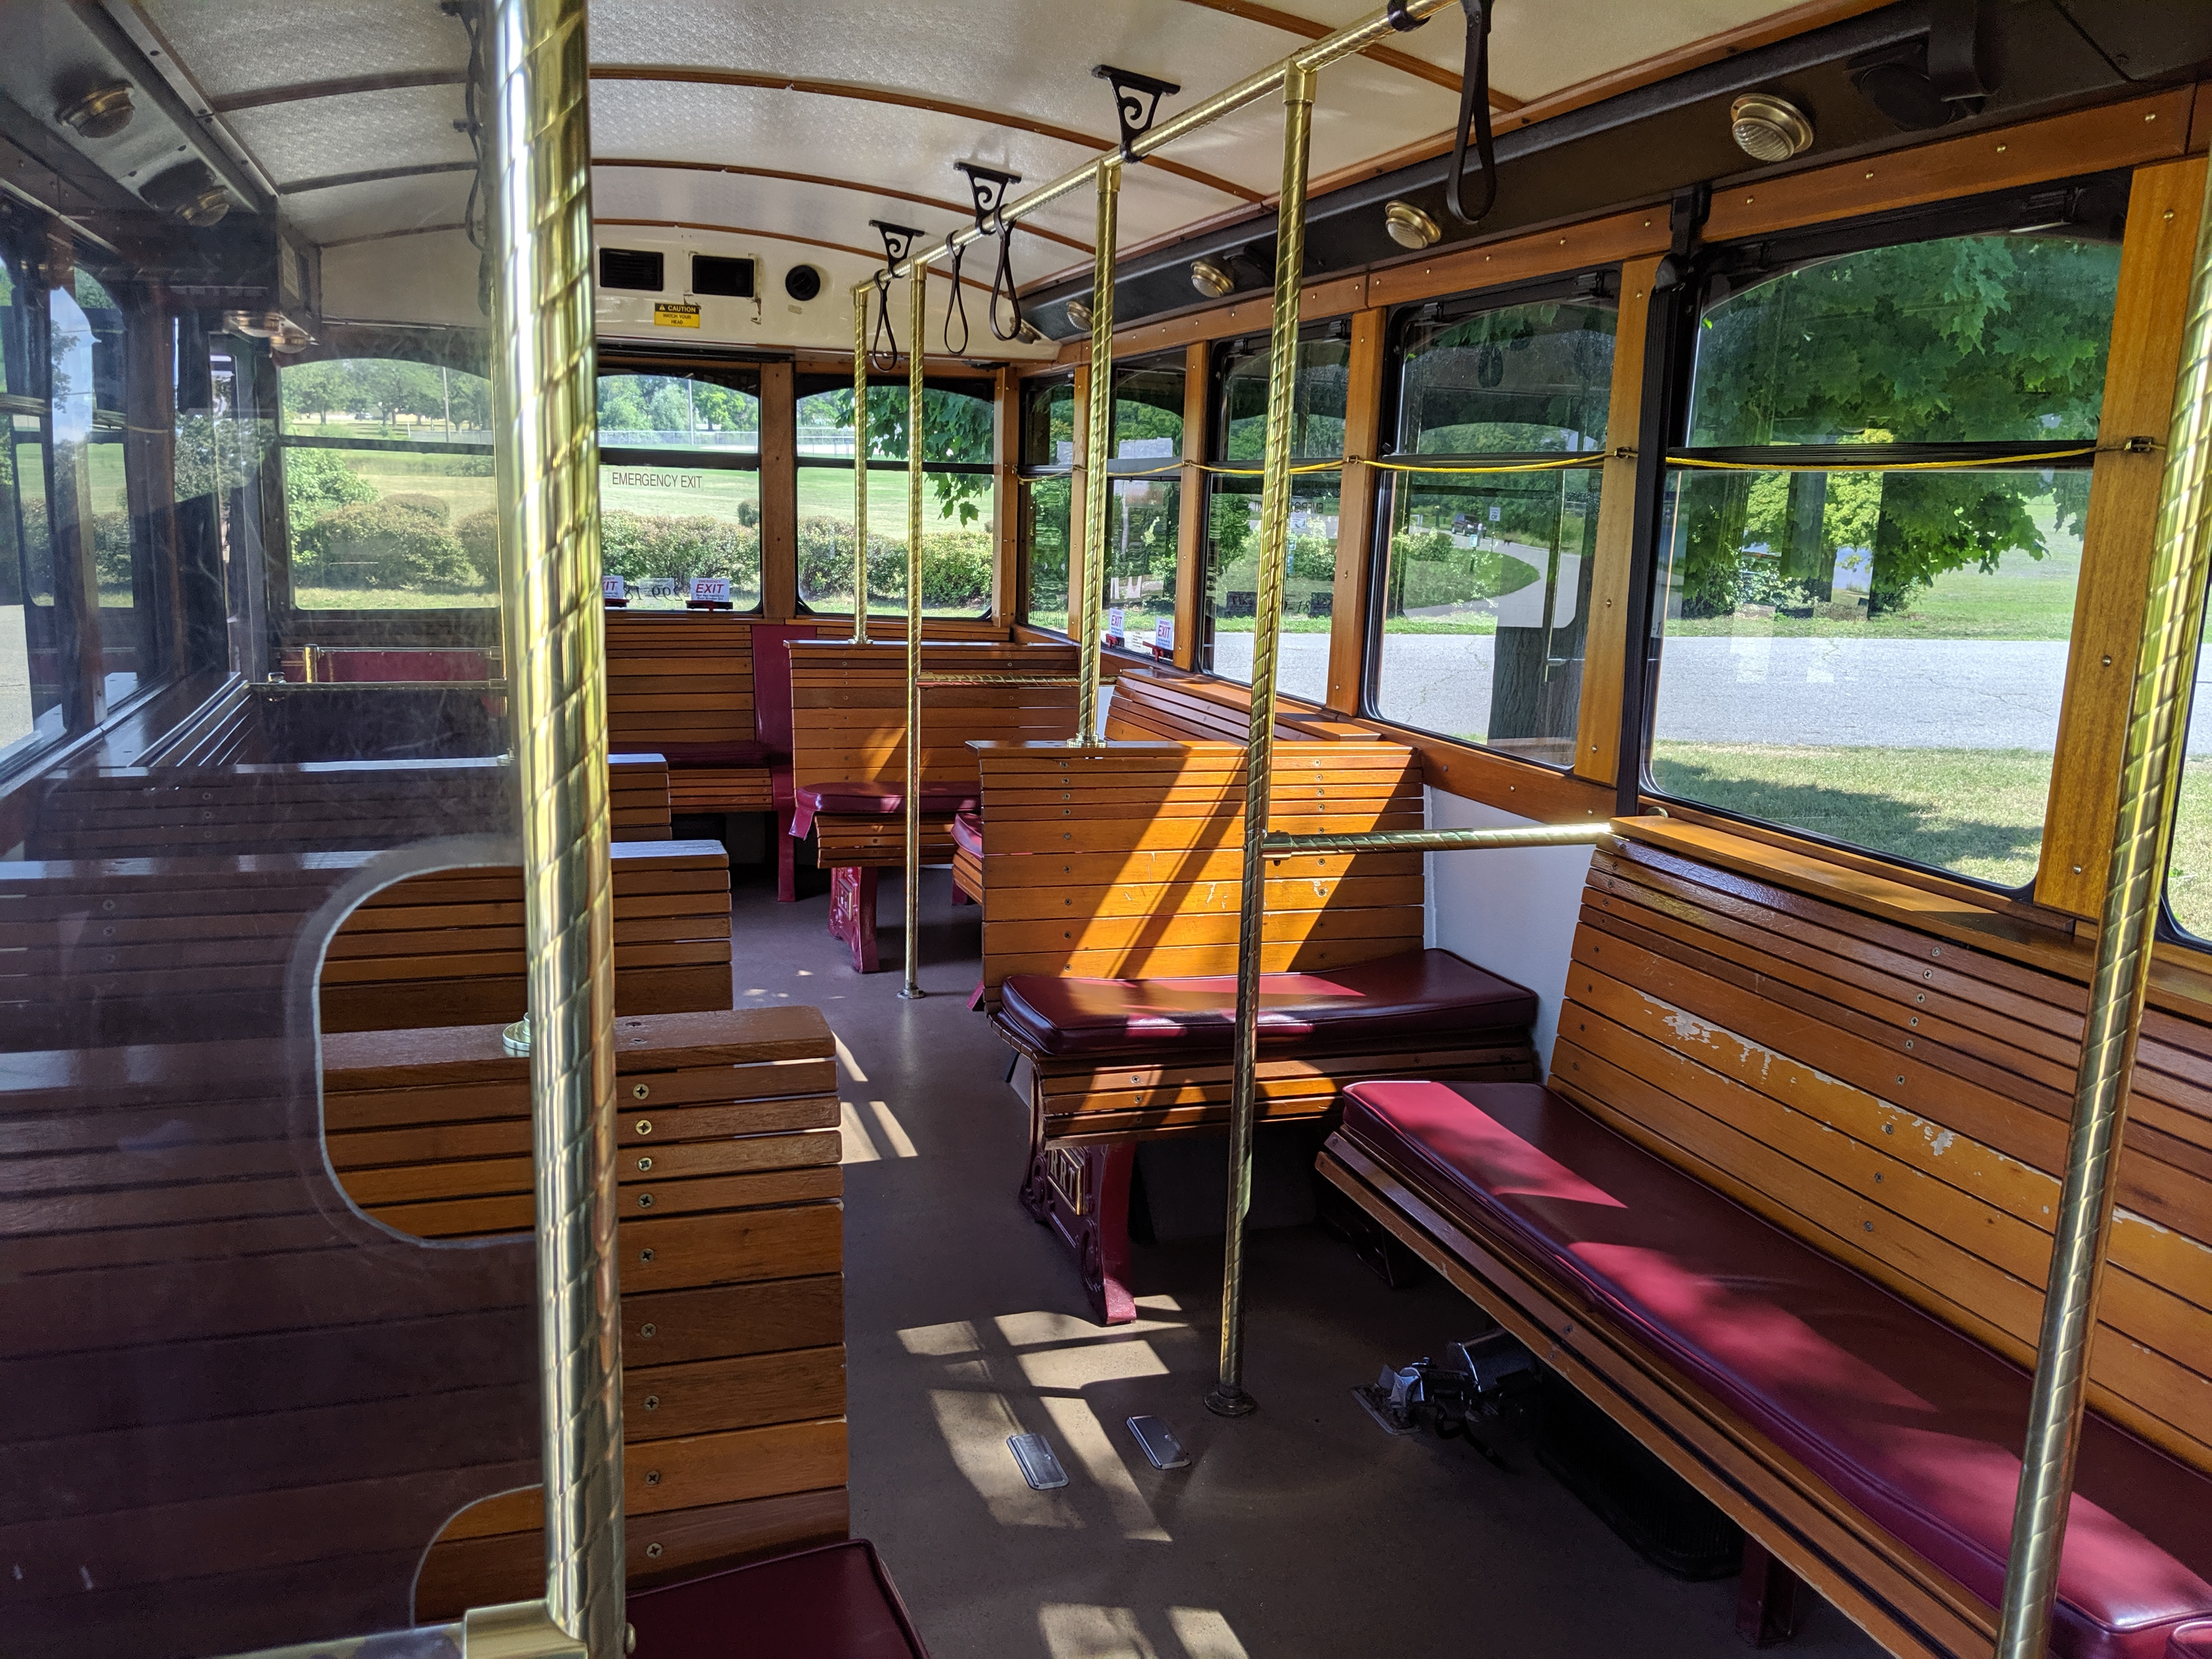 27 Passenger Trolley #27-3 Interior 1